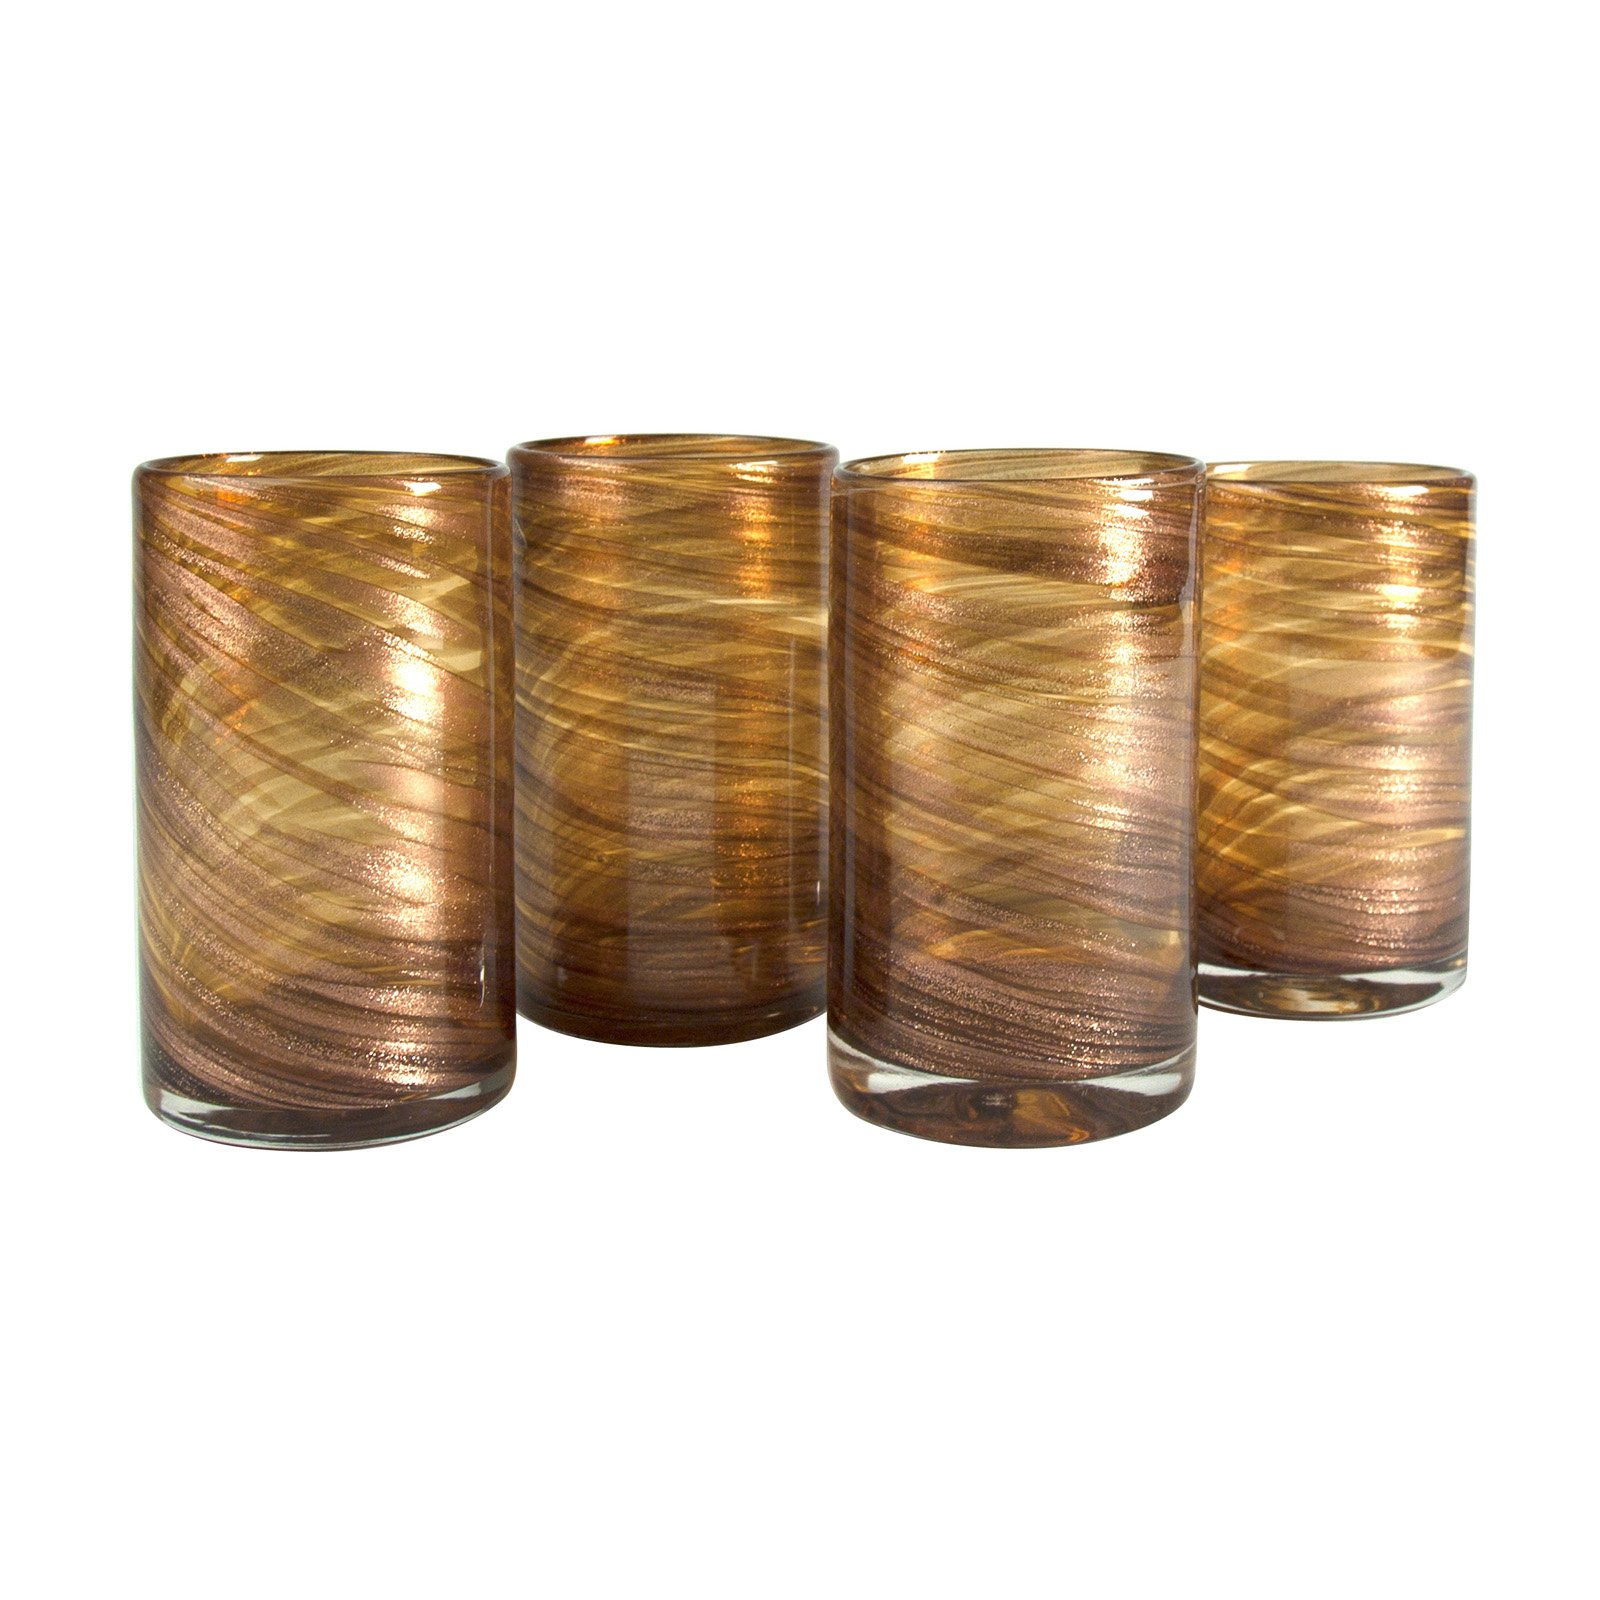 Artland 19 oz. Shimmer Highball - Amber - Set of 4